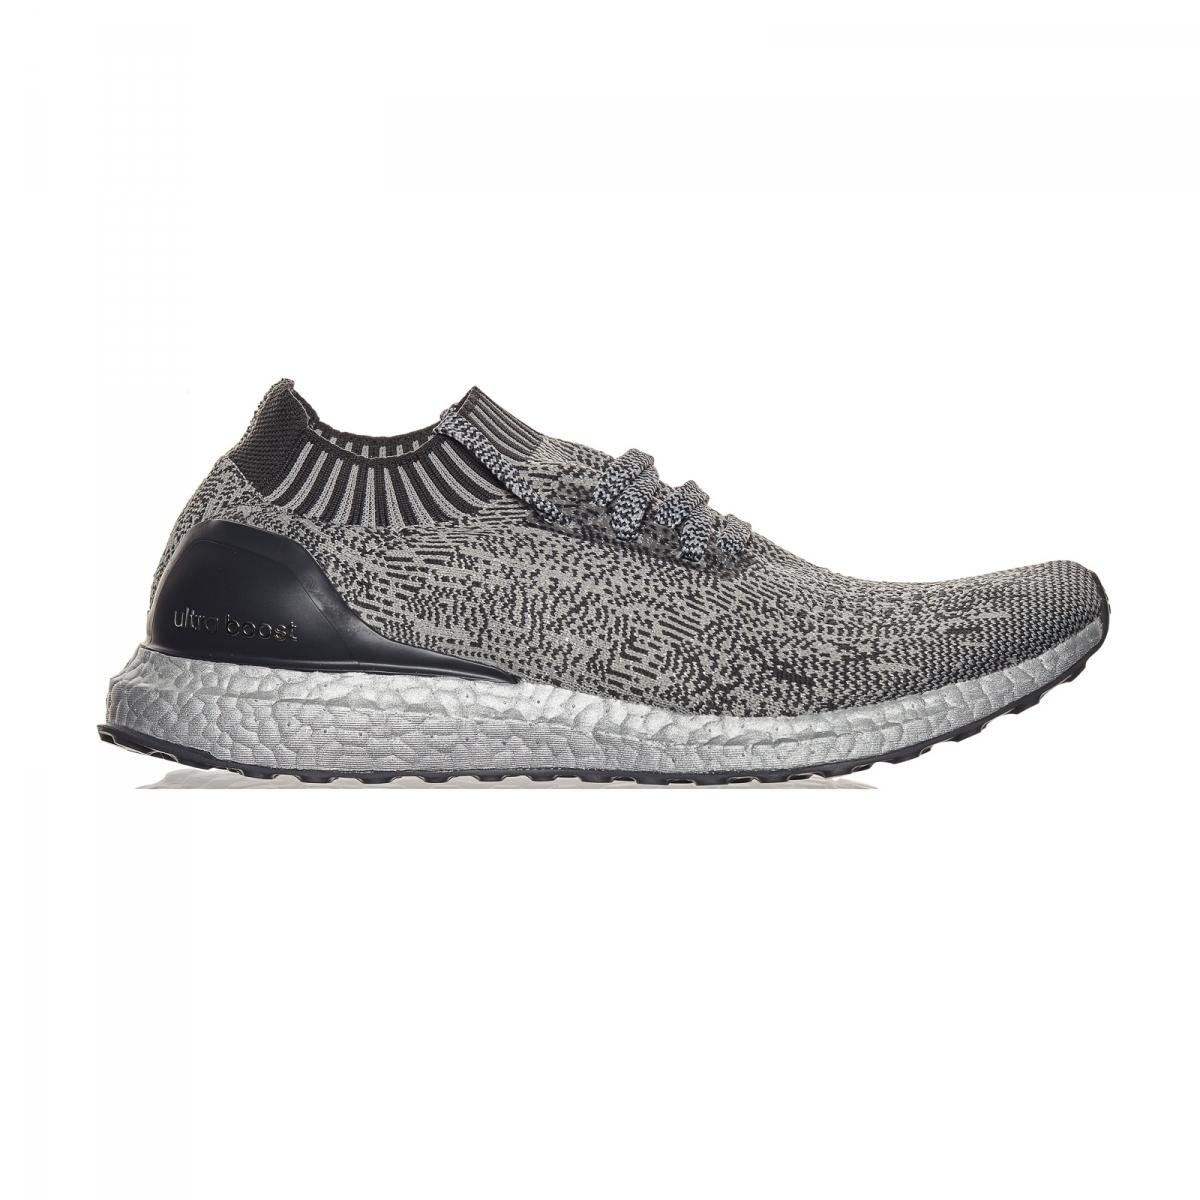 2b58251a641c1 adidas Originals Ultraboost Uncaged Sneakers in Gray for Men - Lyst